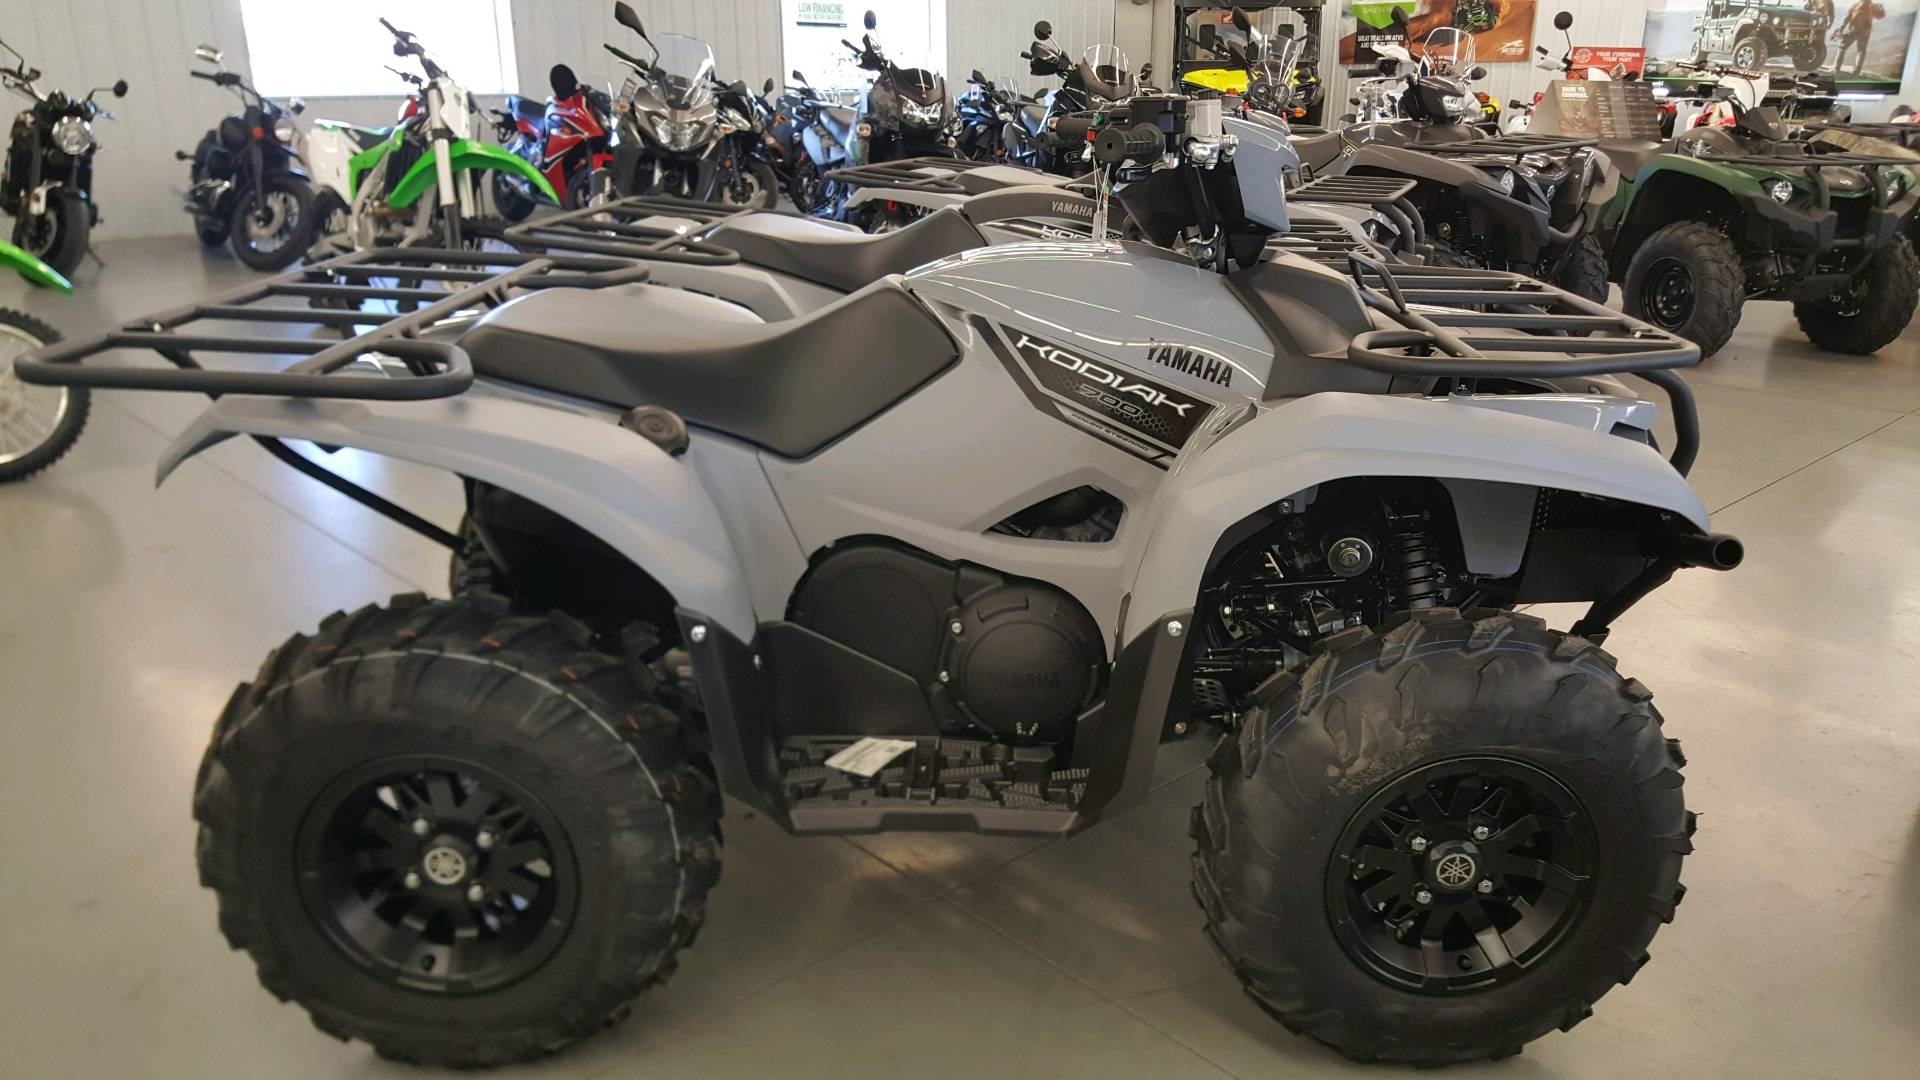 2018 Yamaha YFM70KPAJS-KODIAK in Harrisburg, Illinois